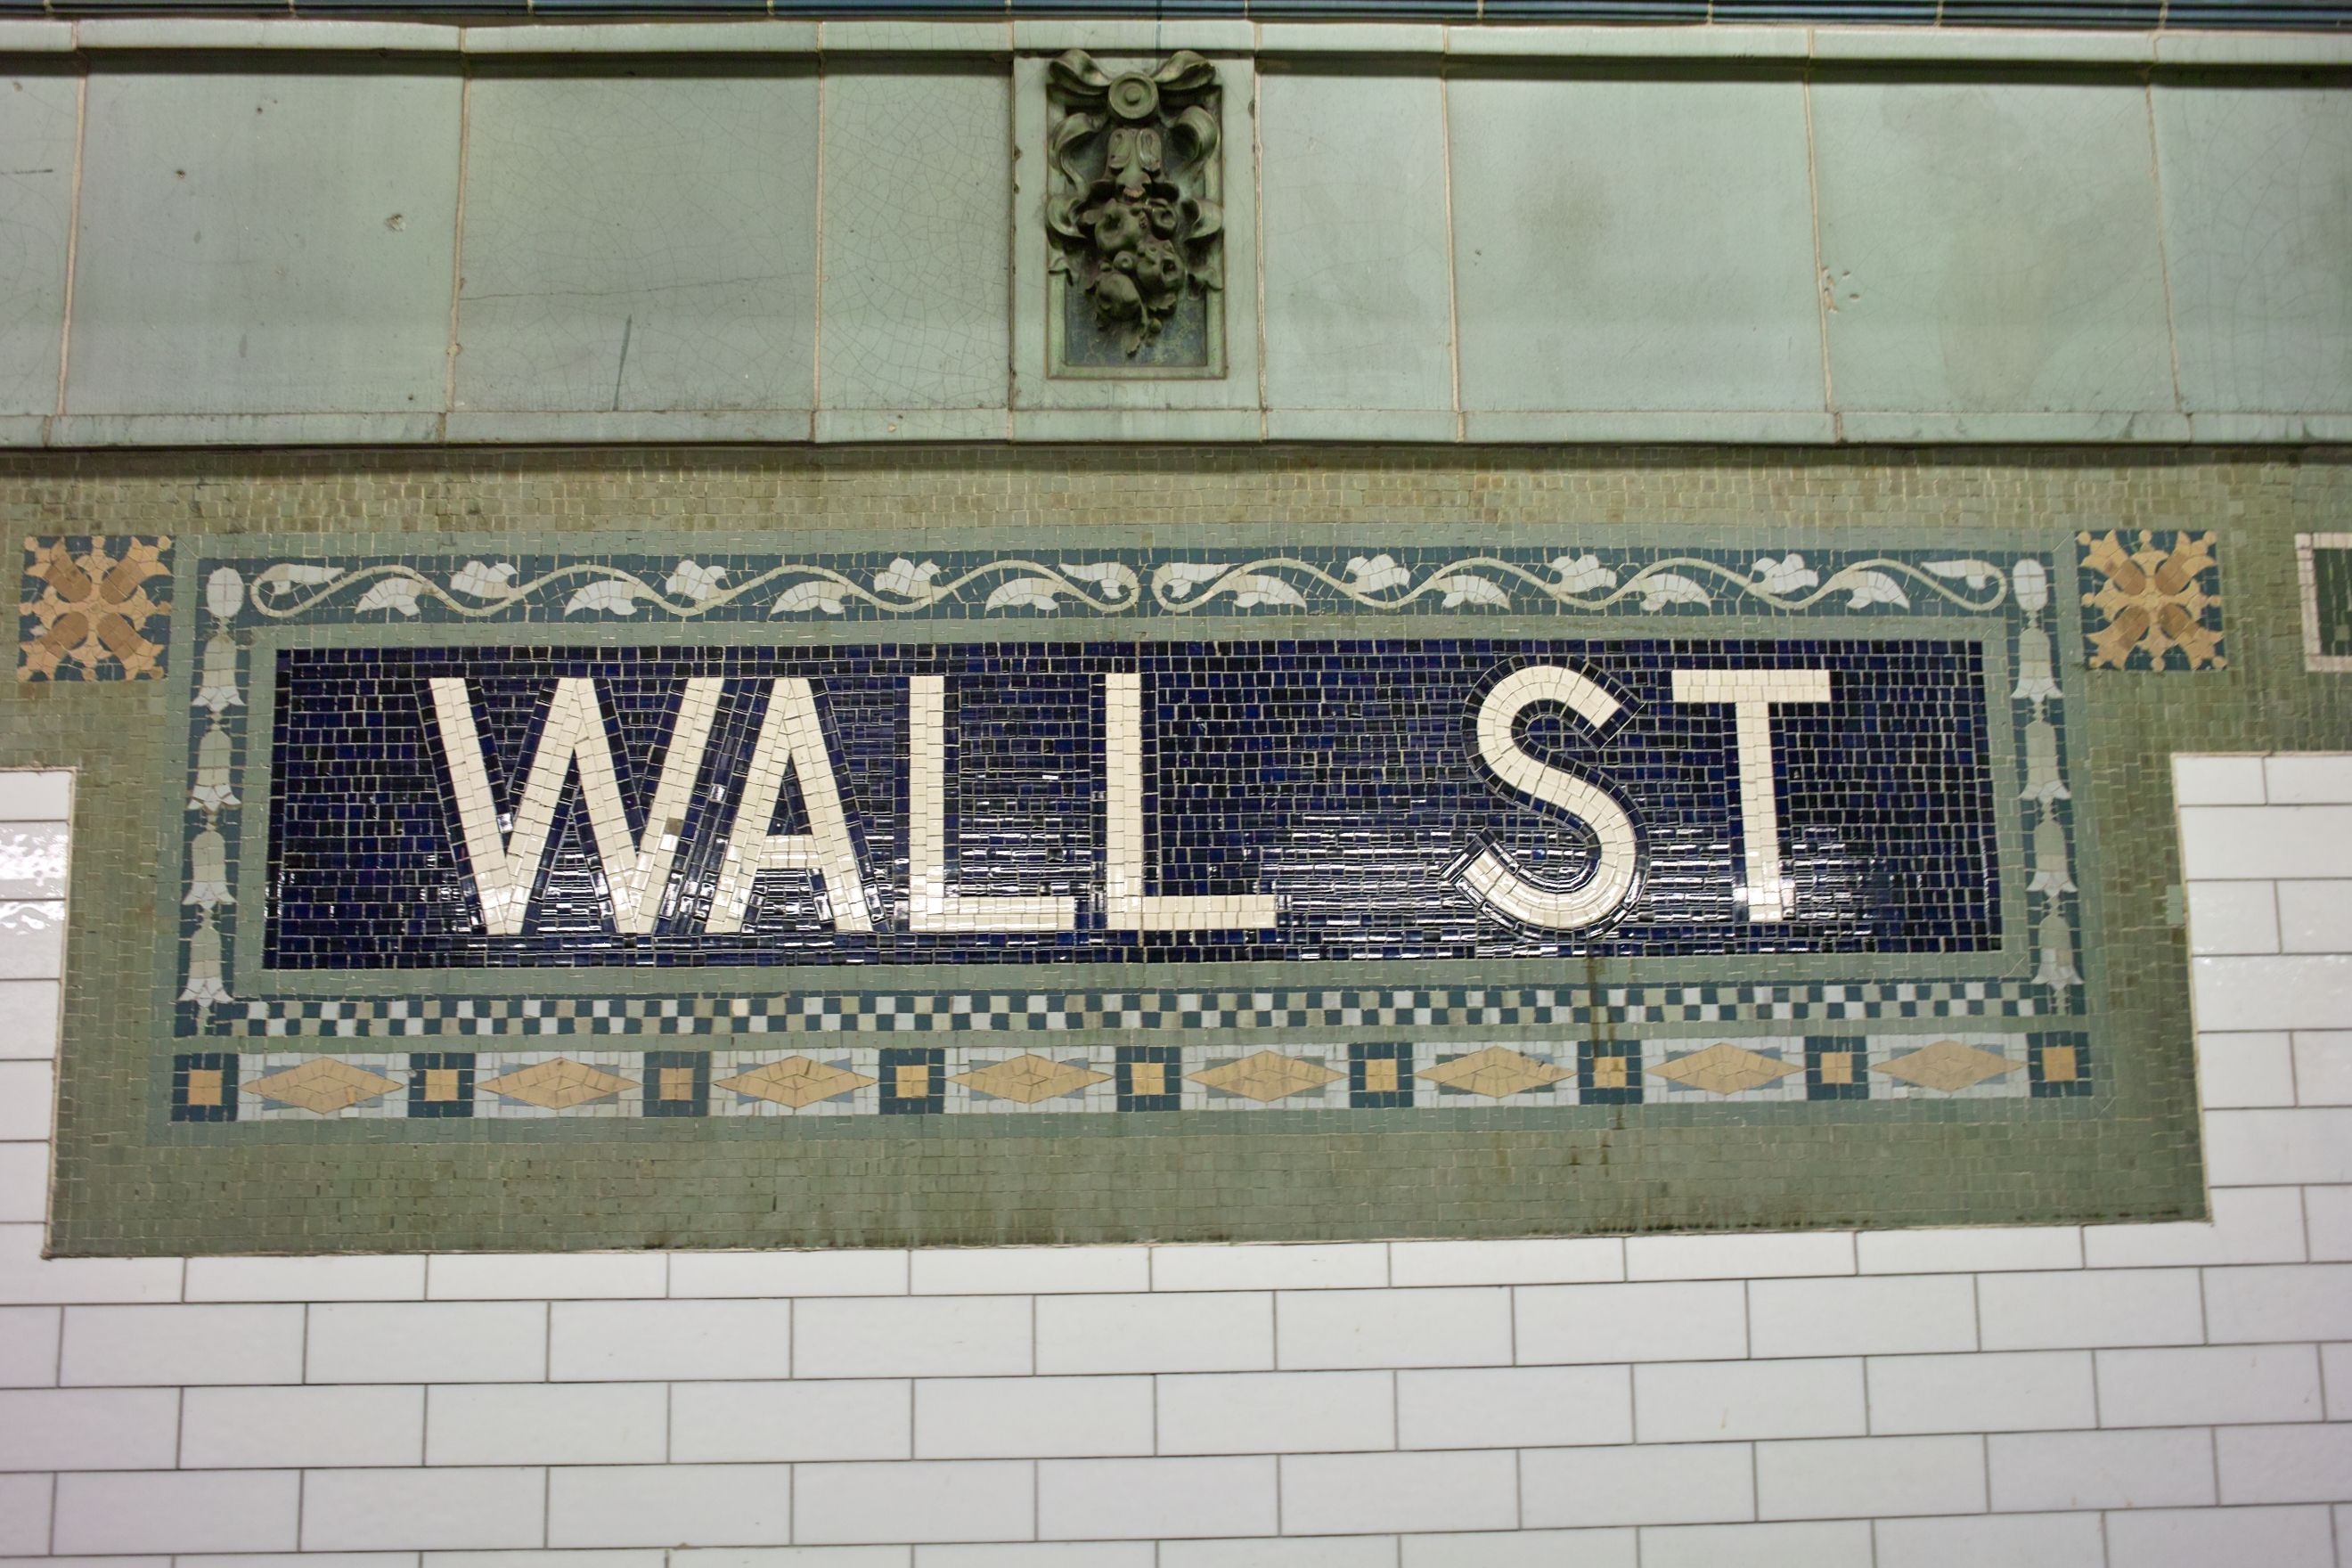 Nyc subway tiles wall st station love the border on this one wall street stop mosaic tile signage from new york city subway dailygadgetfo Choice Image